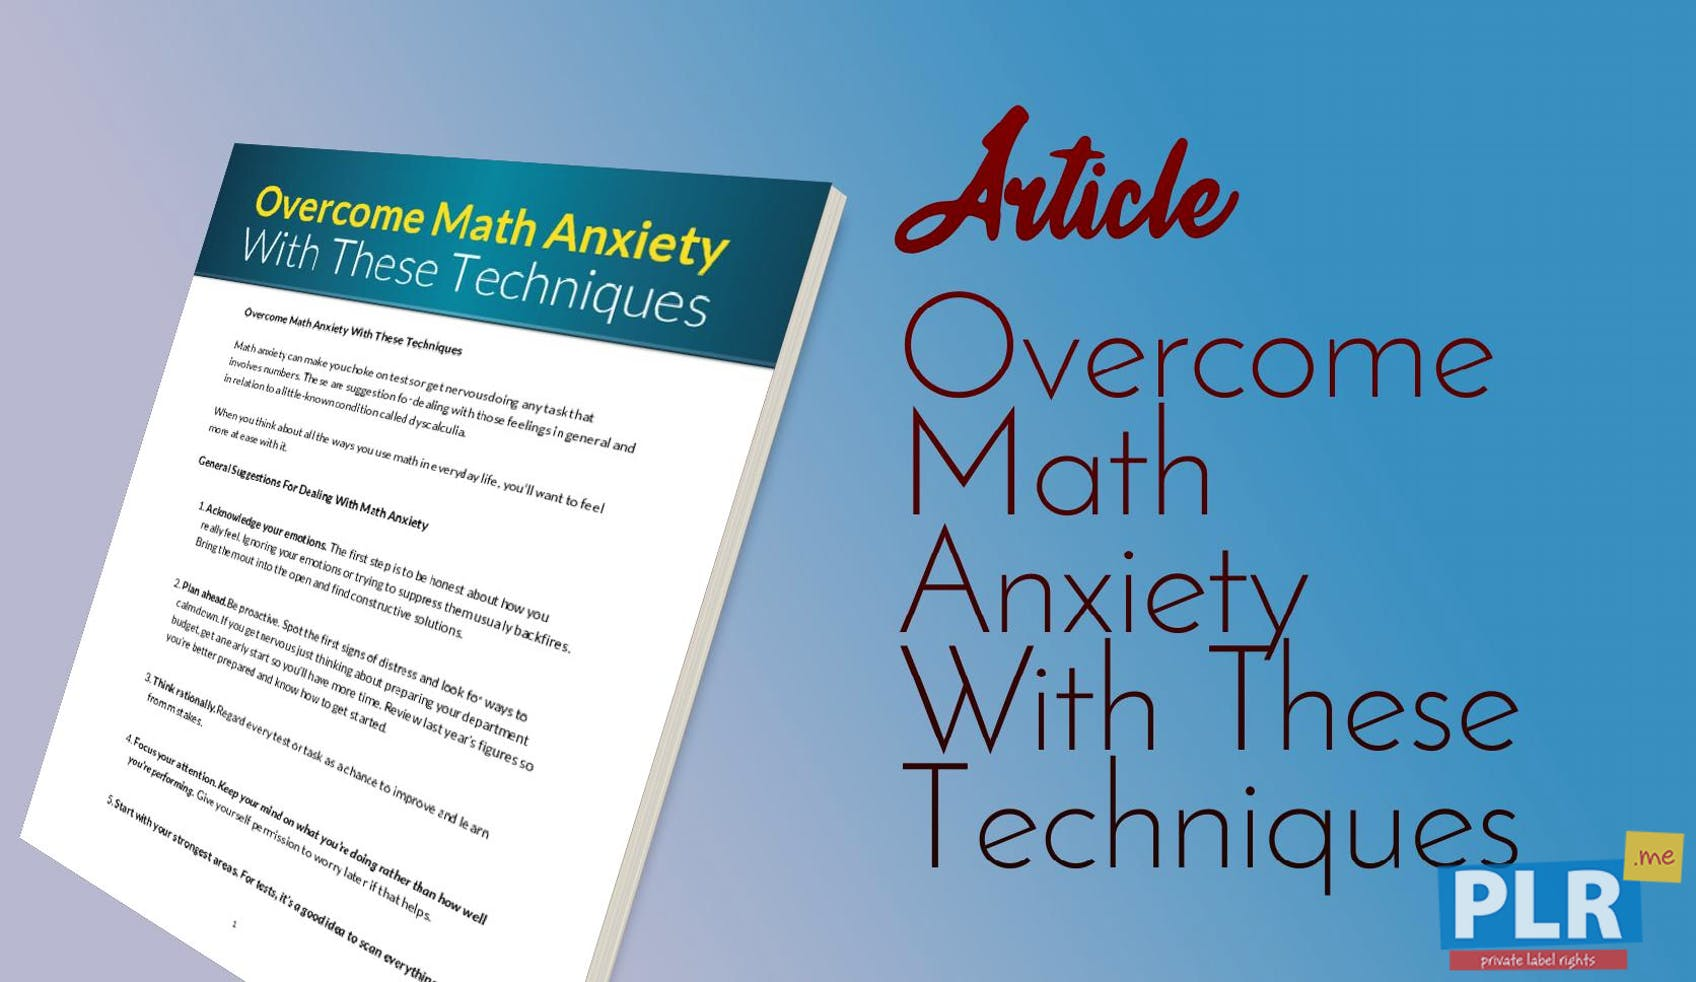 PLR Articles & Blog Posts - Overcome Math Anxiety With These ...